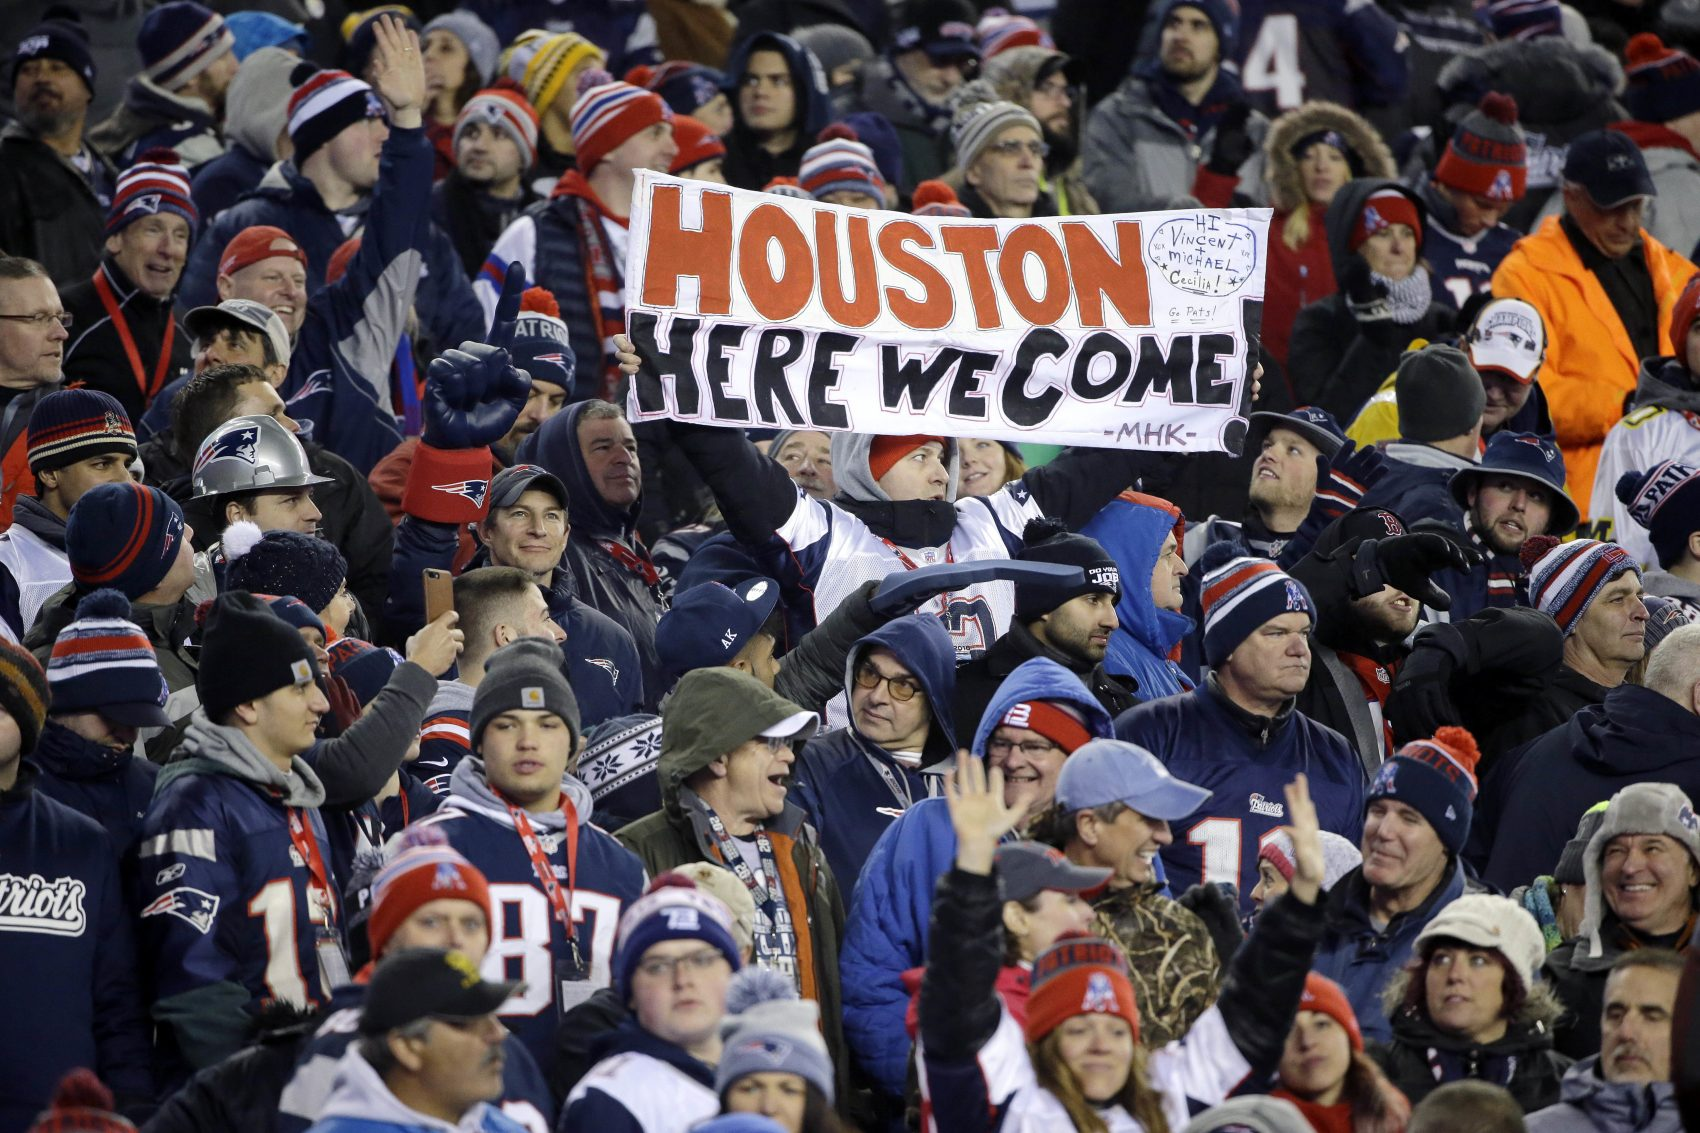 030c3f3a5 A New England Patriots fan holds a sign referring to the team's upcoming  trip to Houston